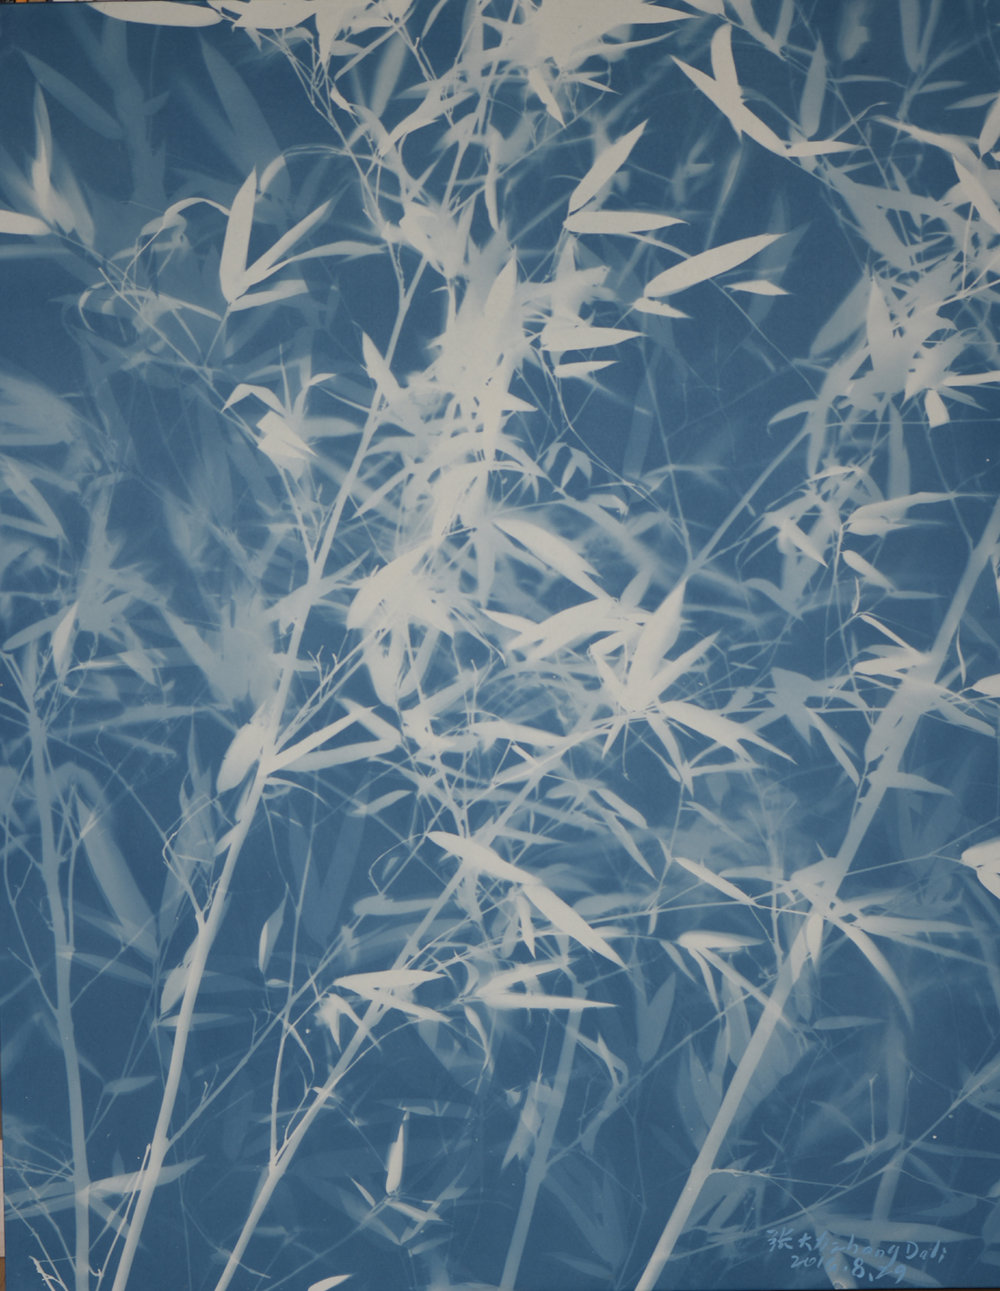 Bamboo Series No.12, Cyanotype on Canvas, 108 x 86 cm, 2016 | Photo Copyright Artist Zhang Dali and Courtesy of Pékin Fine Arts